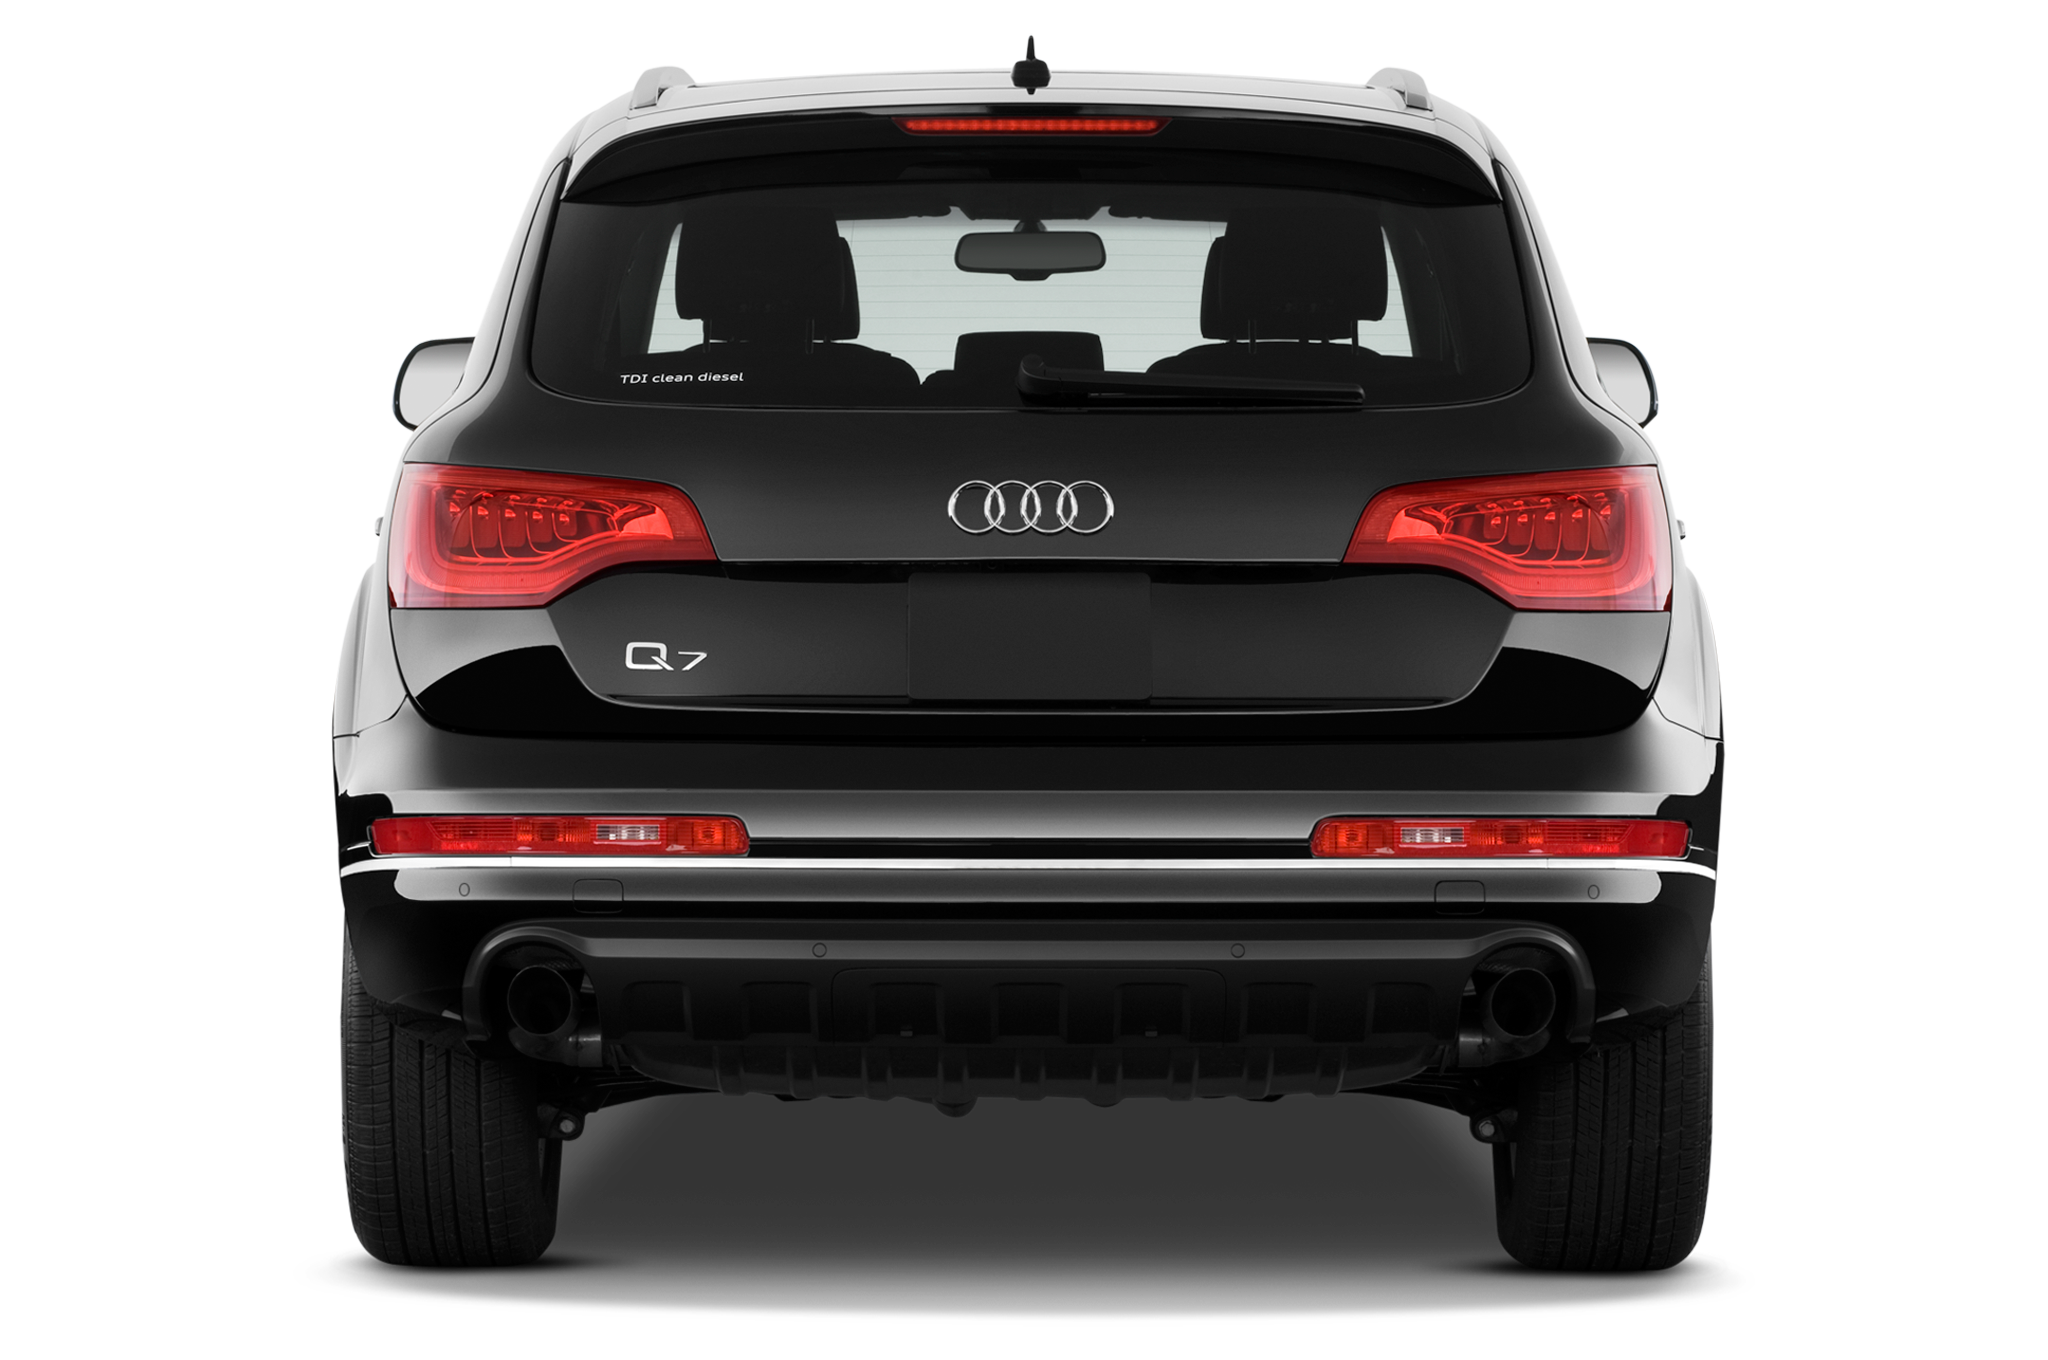 Rear view of car clipart vector black and white library Tag For Audi car images in png : Audi R8 Safety Car Le Mans 2010 ... vector black and white library